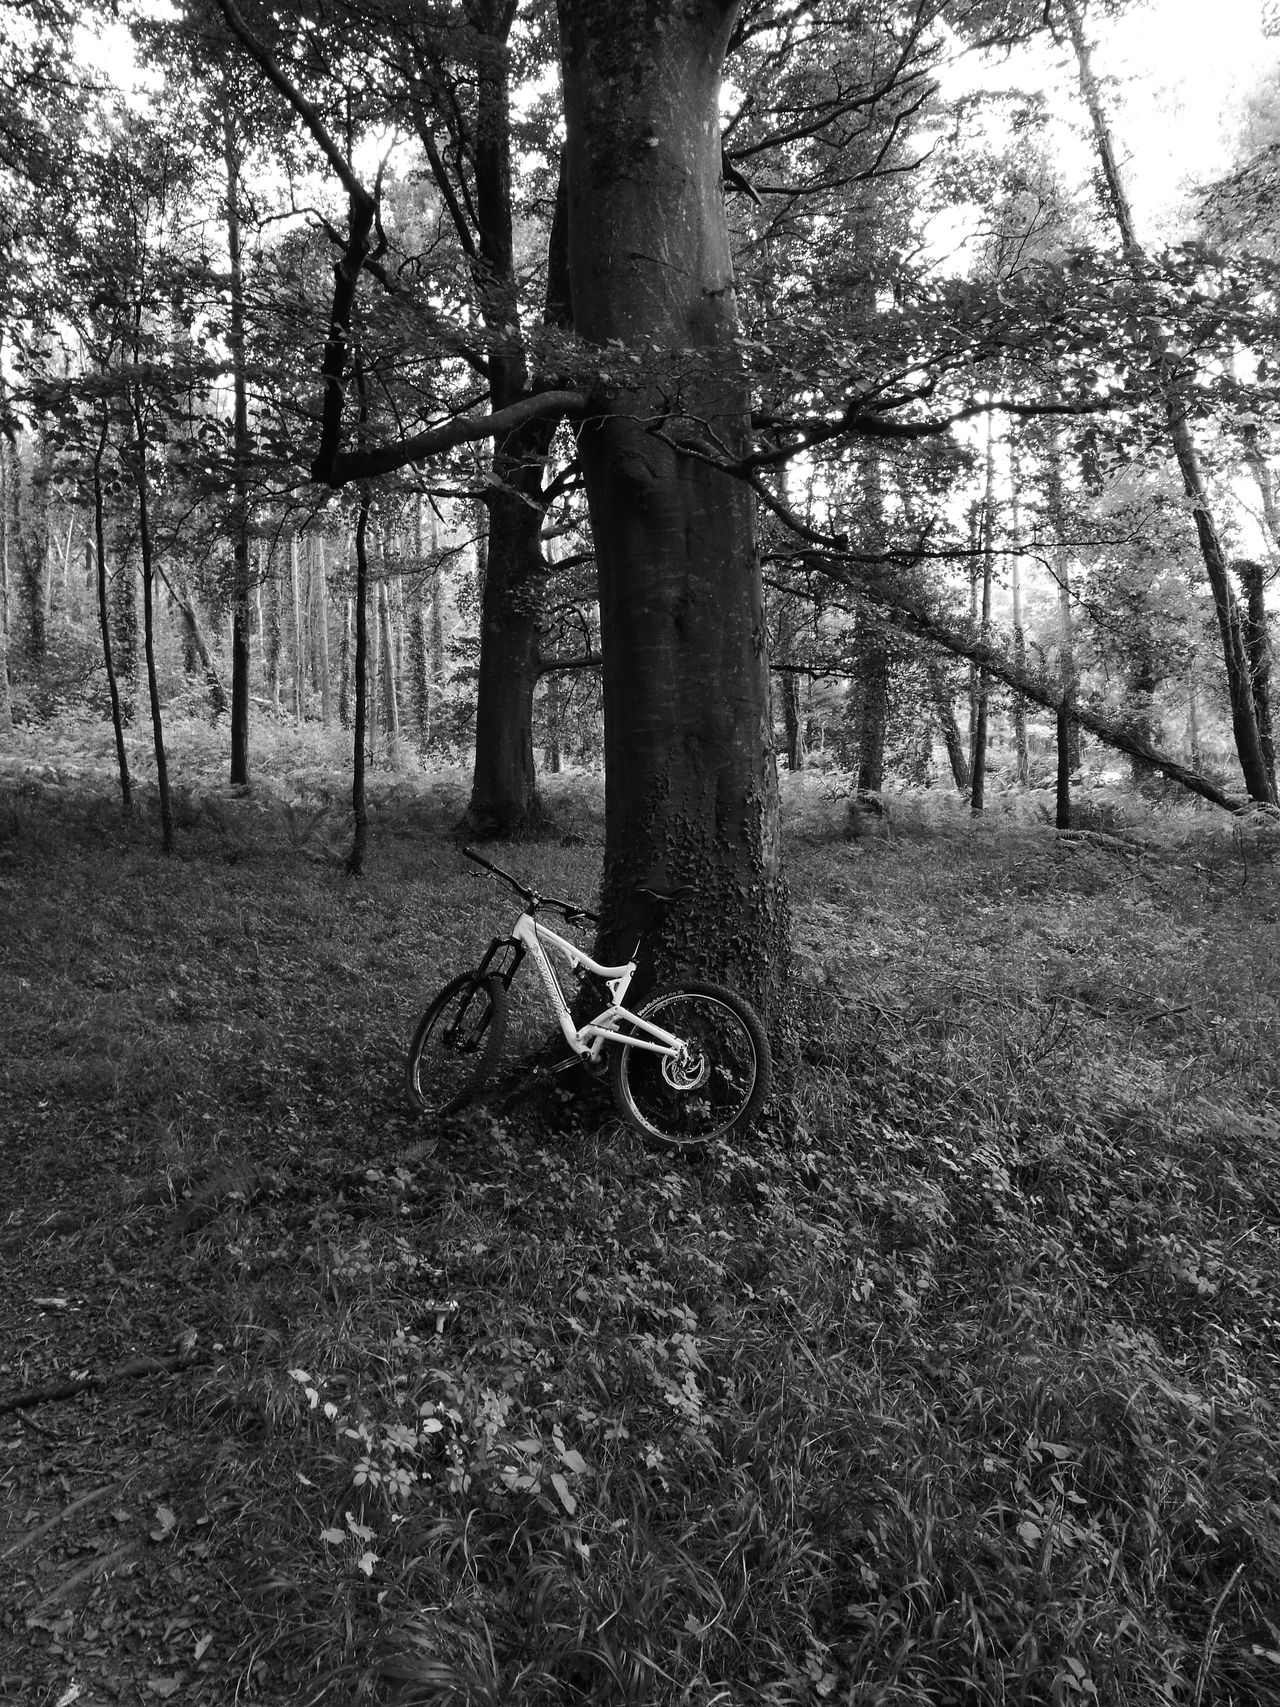 Tree Forest WoodLand Glade Wilderness Outdoors Solitude Nature Tranquil Scene Trail MTB Biking Dromoland Mooghaun Woods Fairyforest